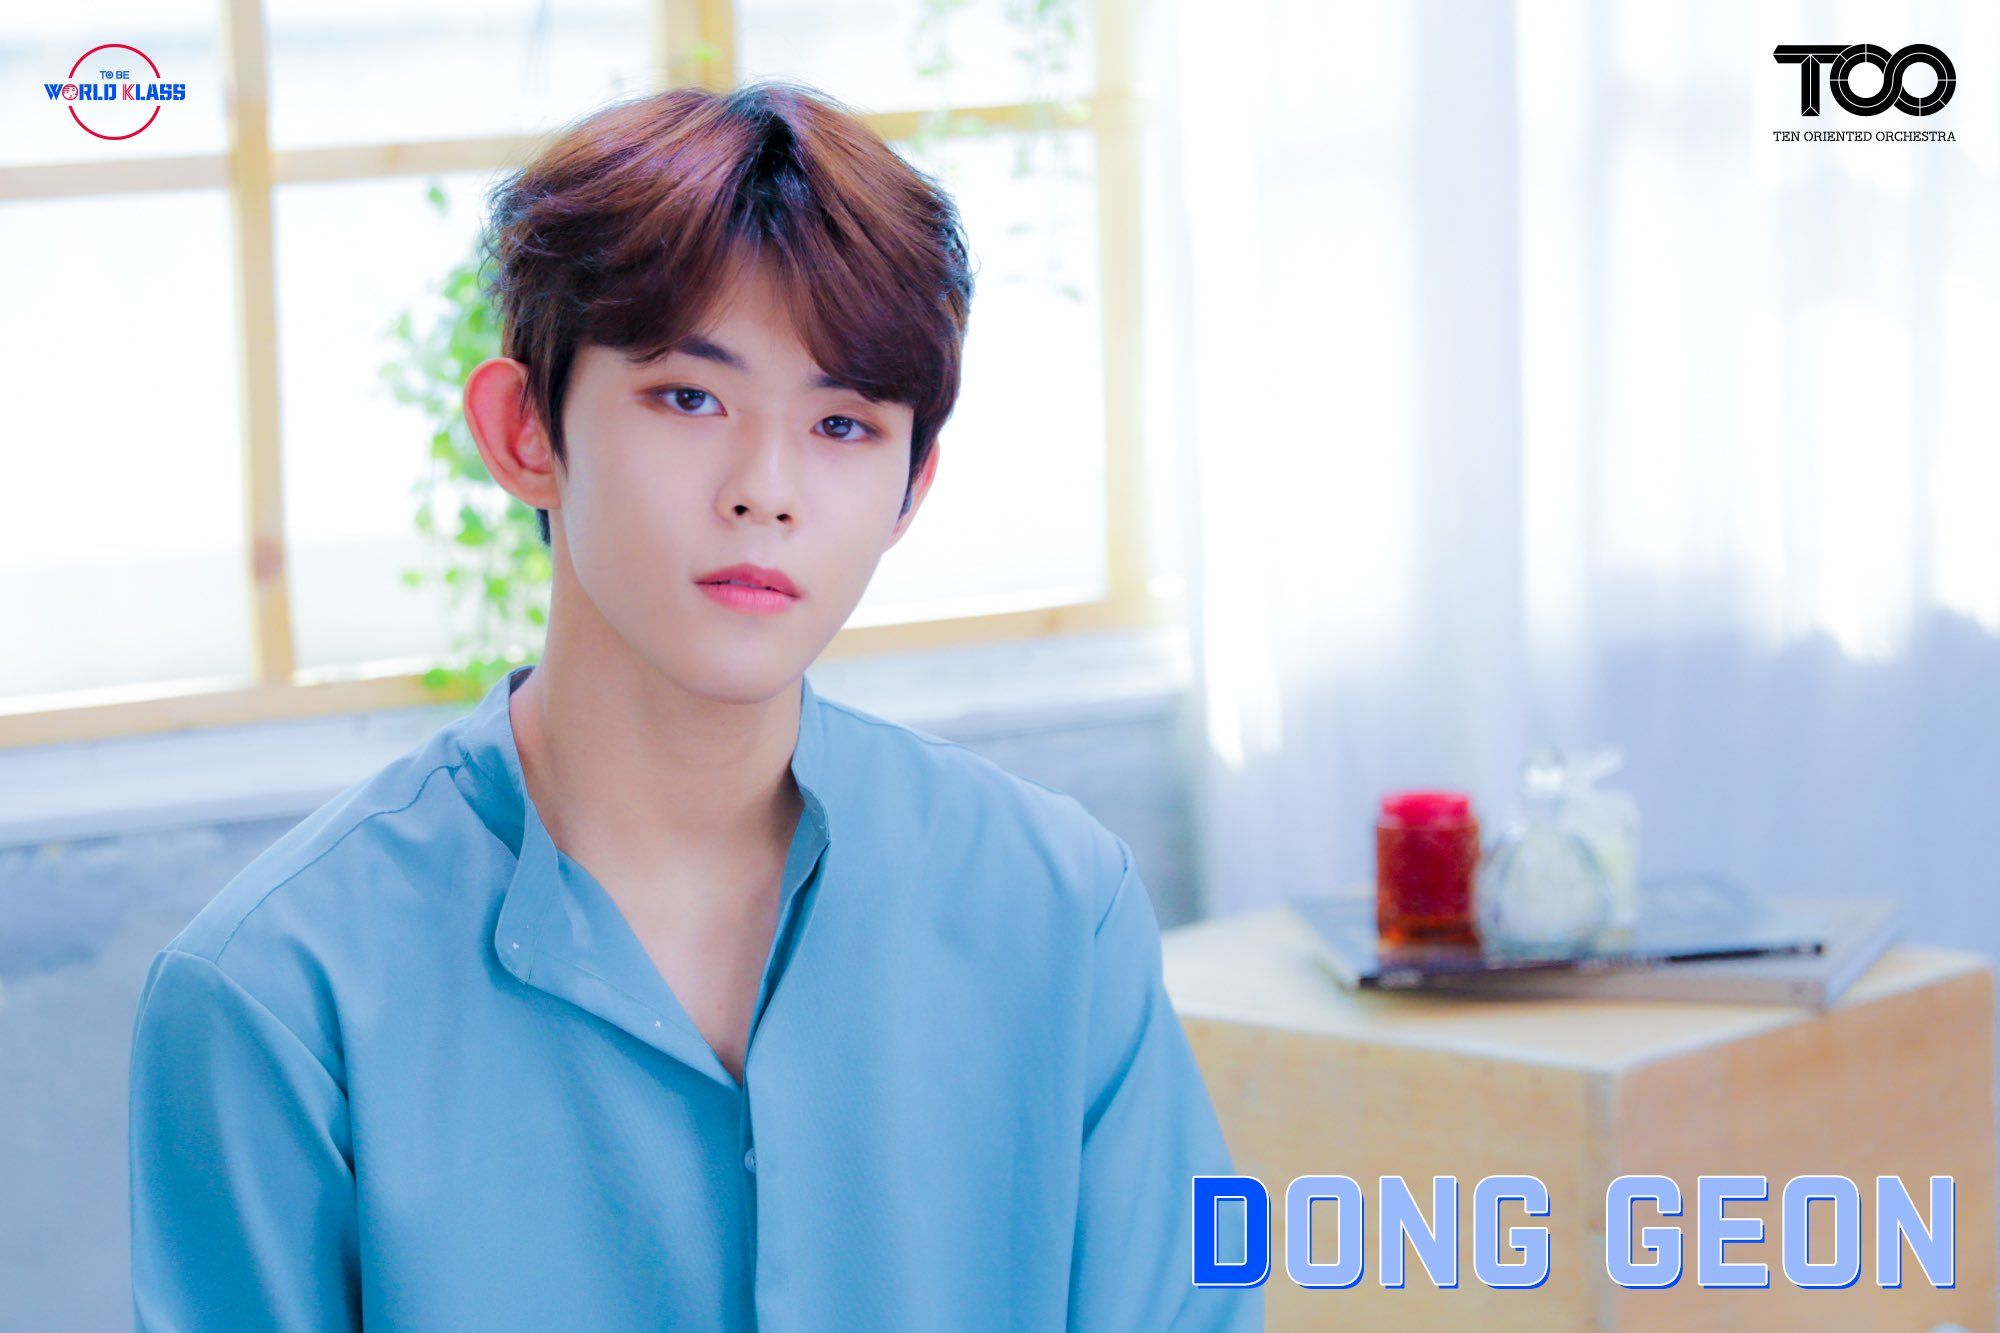 donggeon too to1